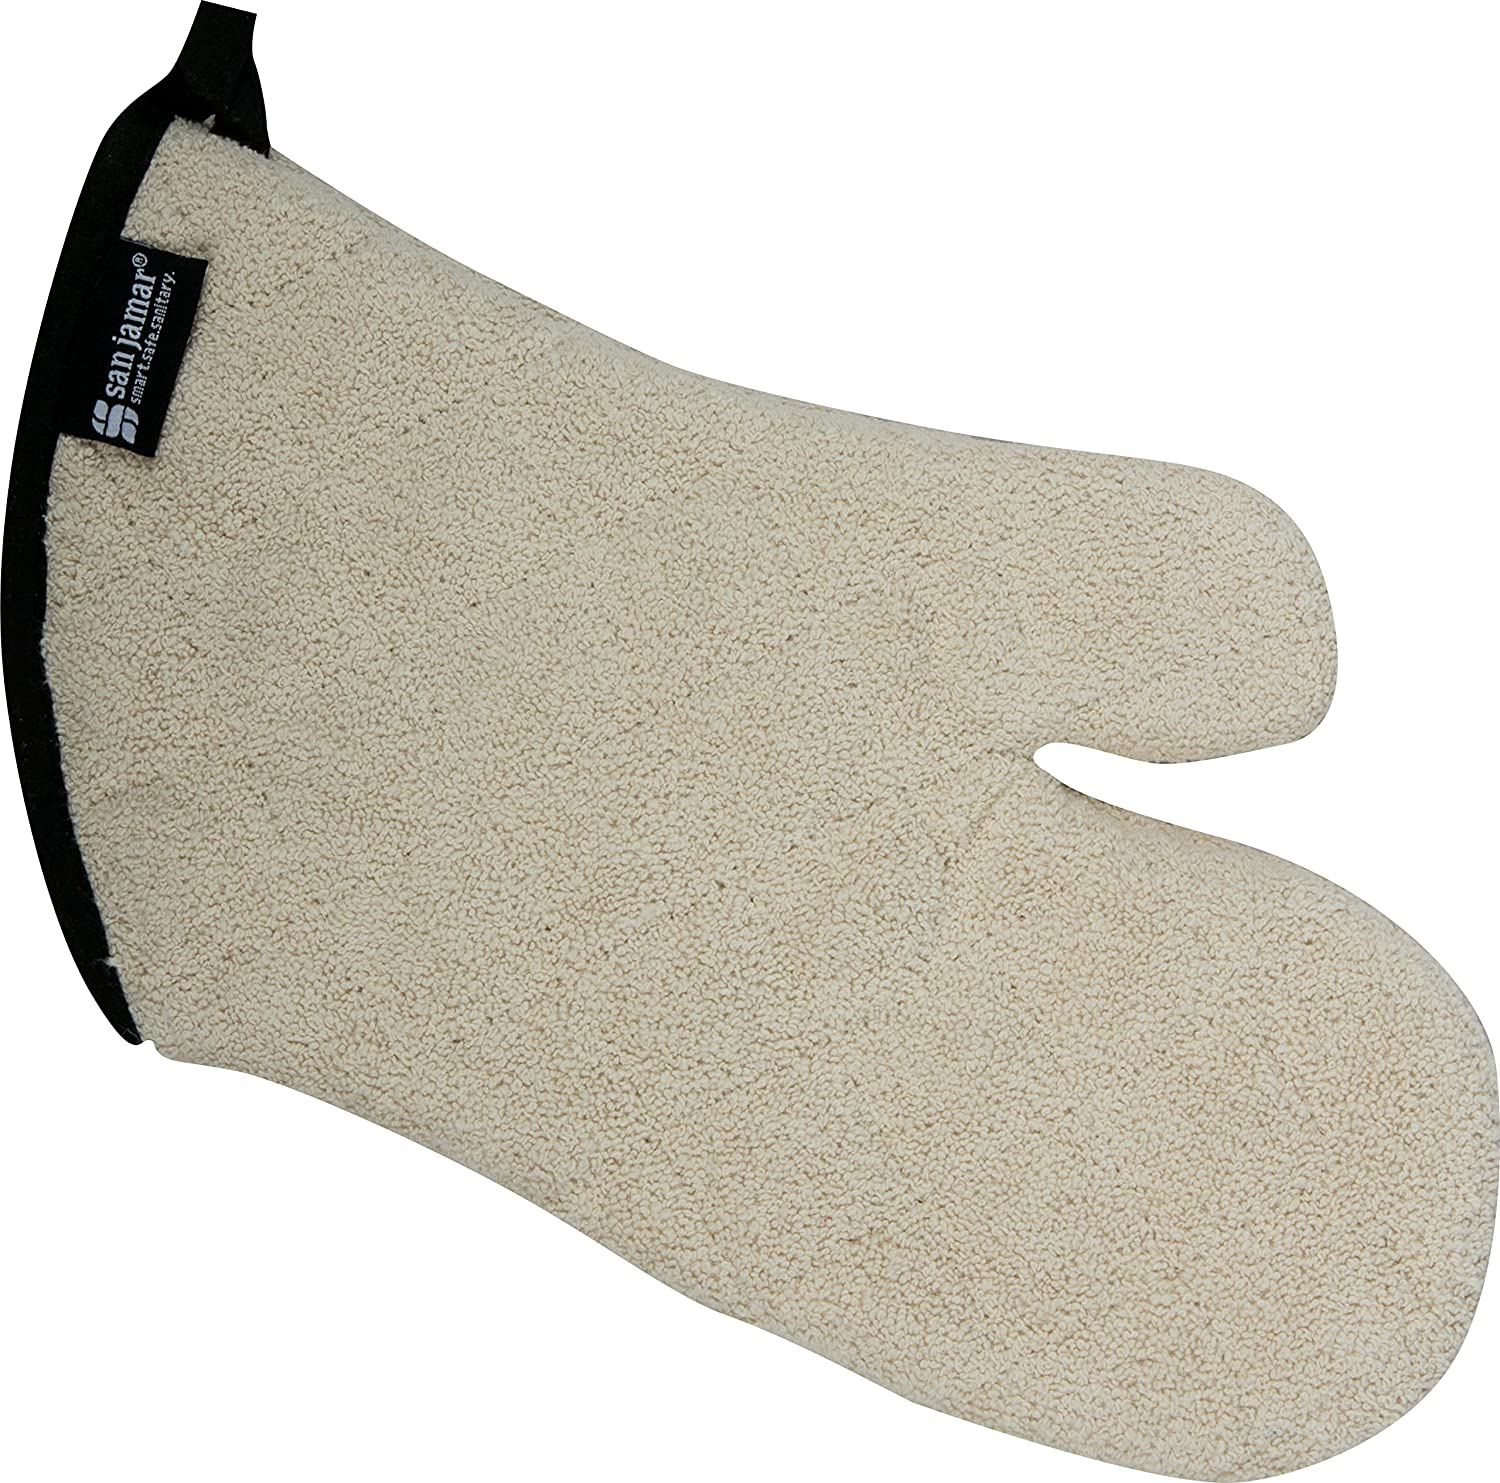 "San Jamar 813TM Heavy Duty Terry Cloth Temperature Protection Oven Mitt, 13"" Length, Natural"